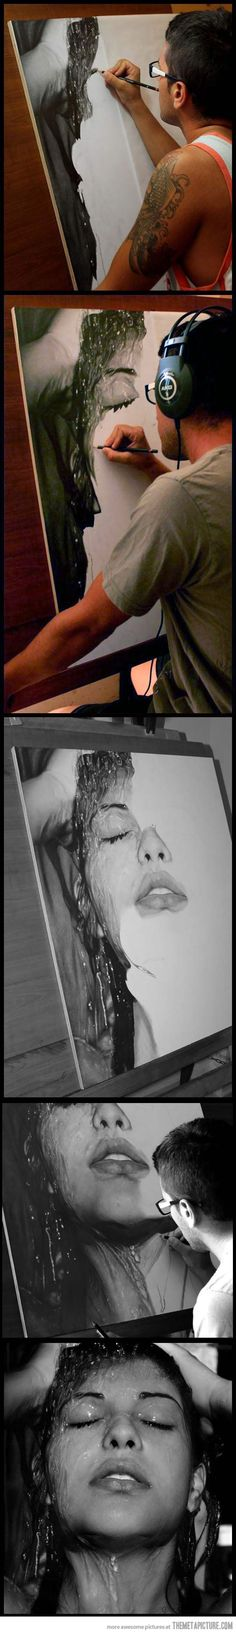 """Sensazioni"" - Diego Fazio, progressive studio artwork {contemporary artist beautiful #hyperreal female head woman face photorealism portrait b+w drawing} <3 http://diegokoi.deviantart.com/art/Sensazioni-331828679?q=gallery:diegokoi/25937209=0"